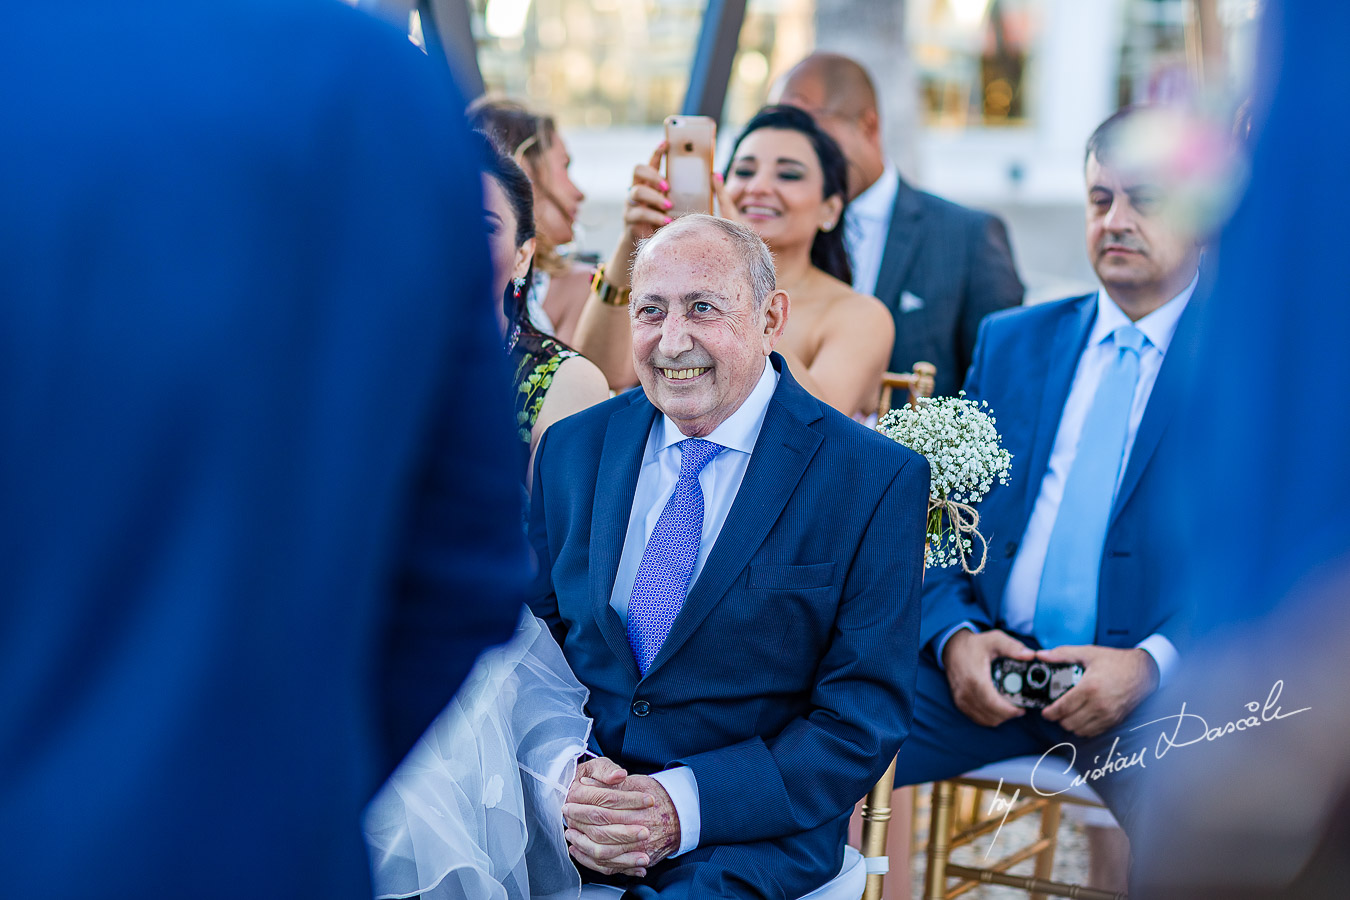 Beautiful moments with the father of the bride during the ceremony, as part of an Exclusive Wedding photography at Grand Resort Limassol, captured by Cyprus Wedding Photographer Cristian Dascalu.